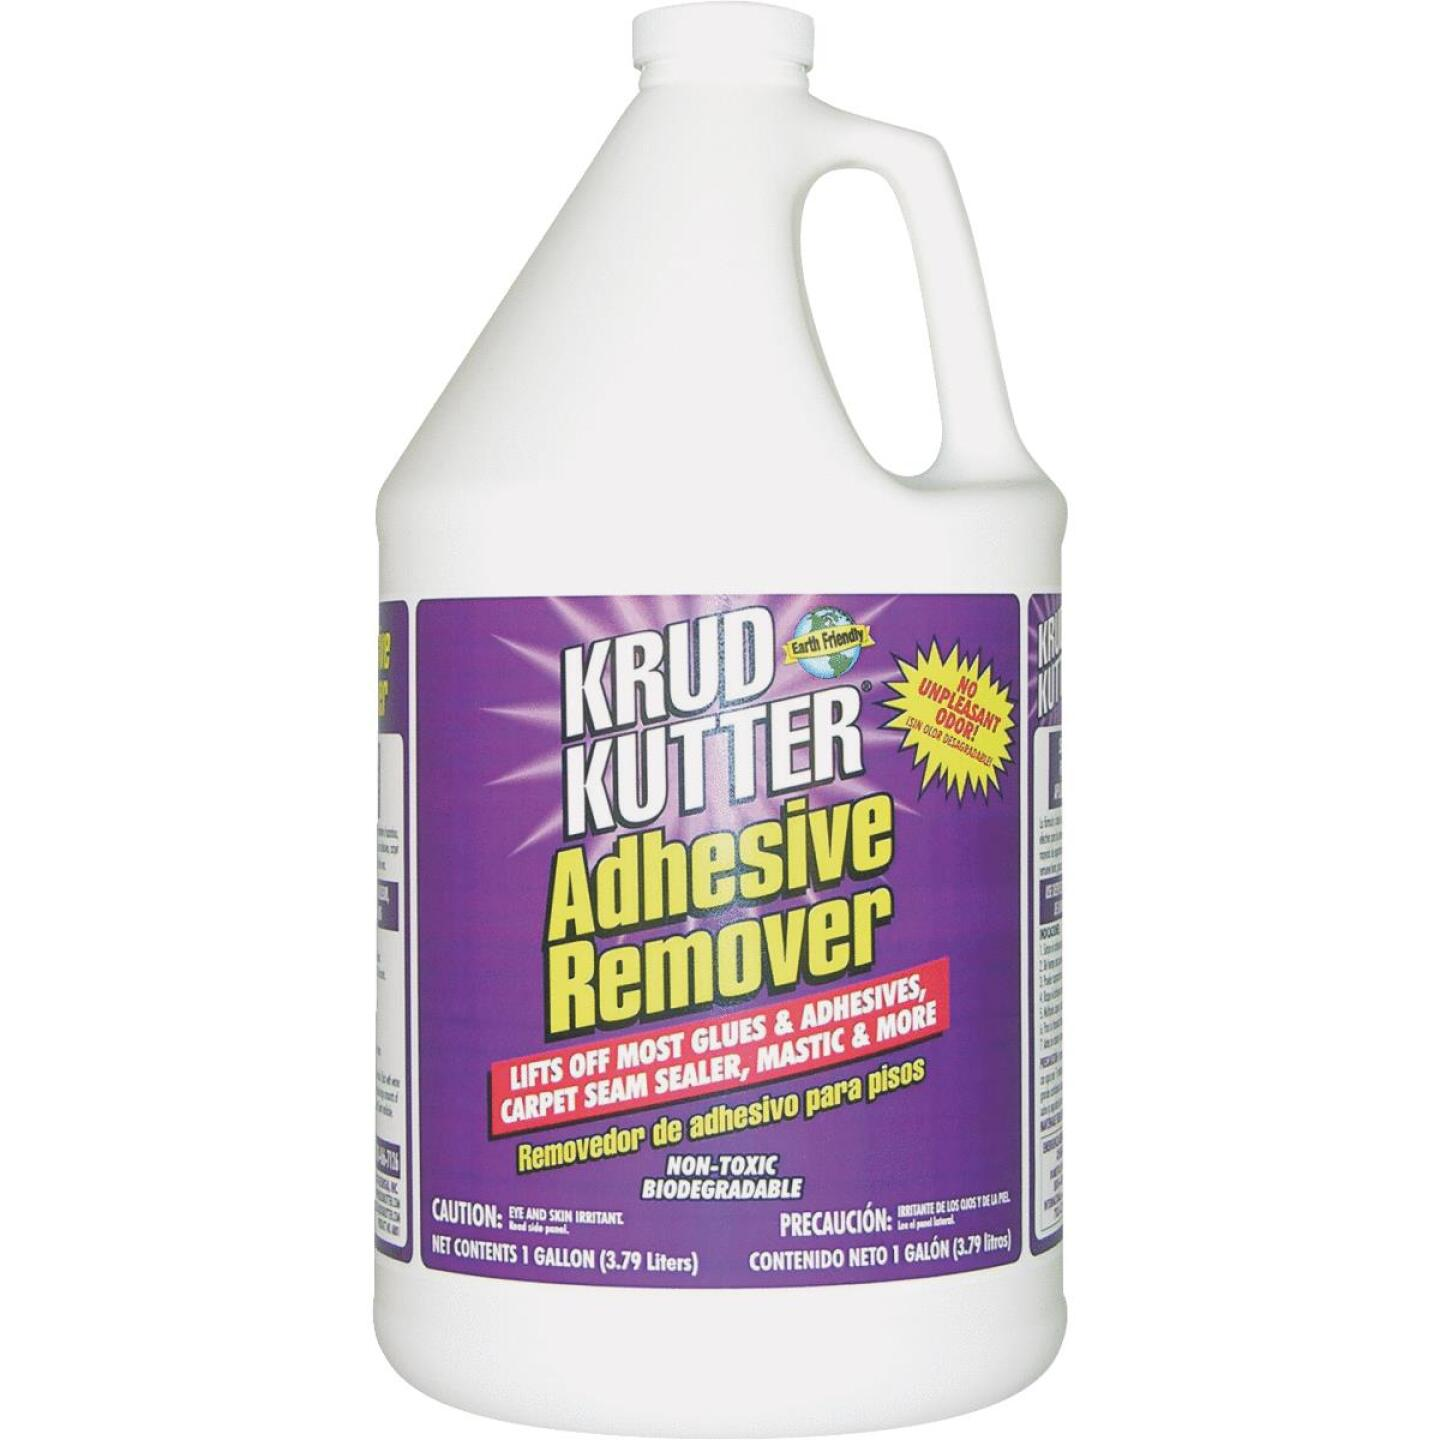 Krud Kutter 1 Gal. Adhesive Remover Image 1